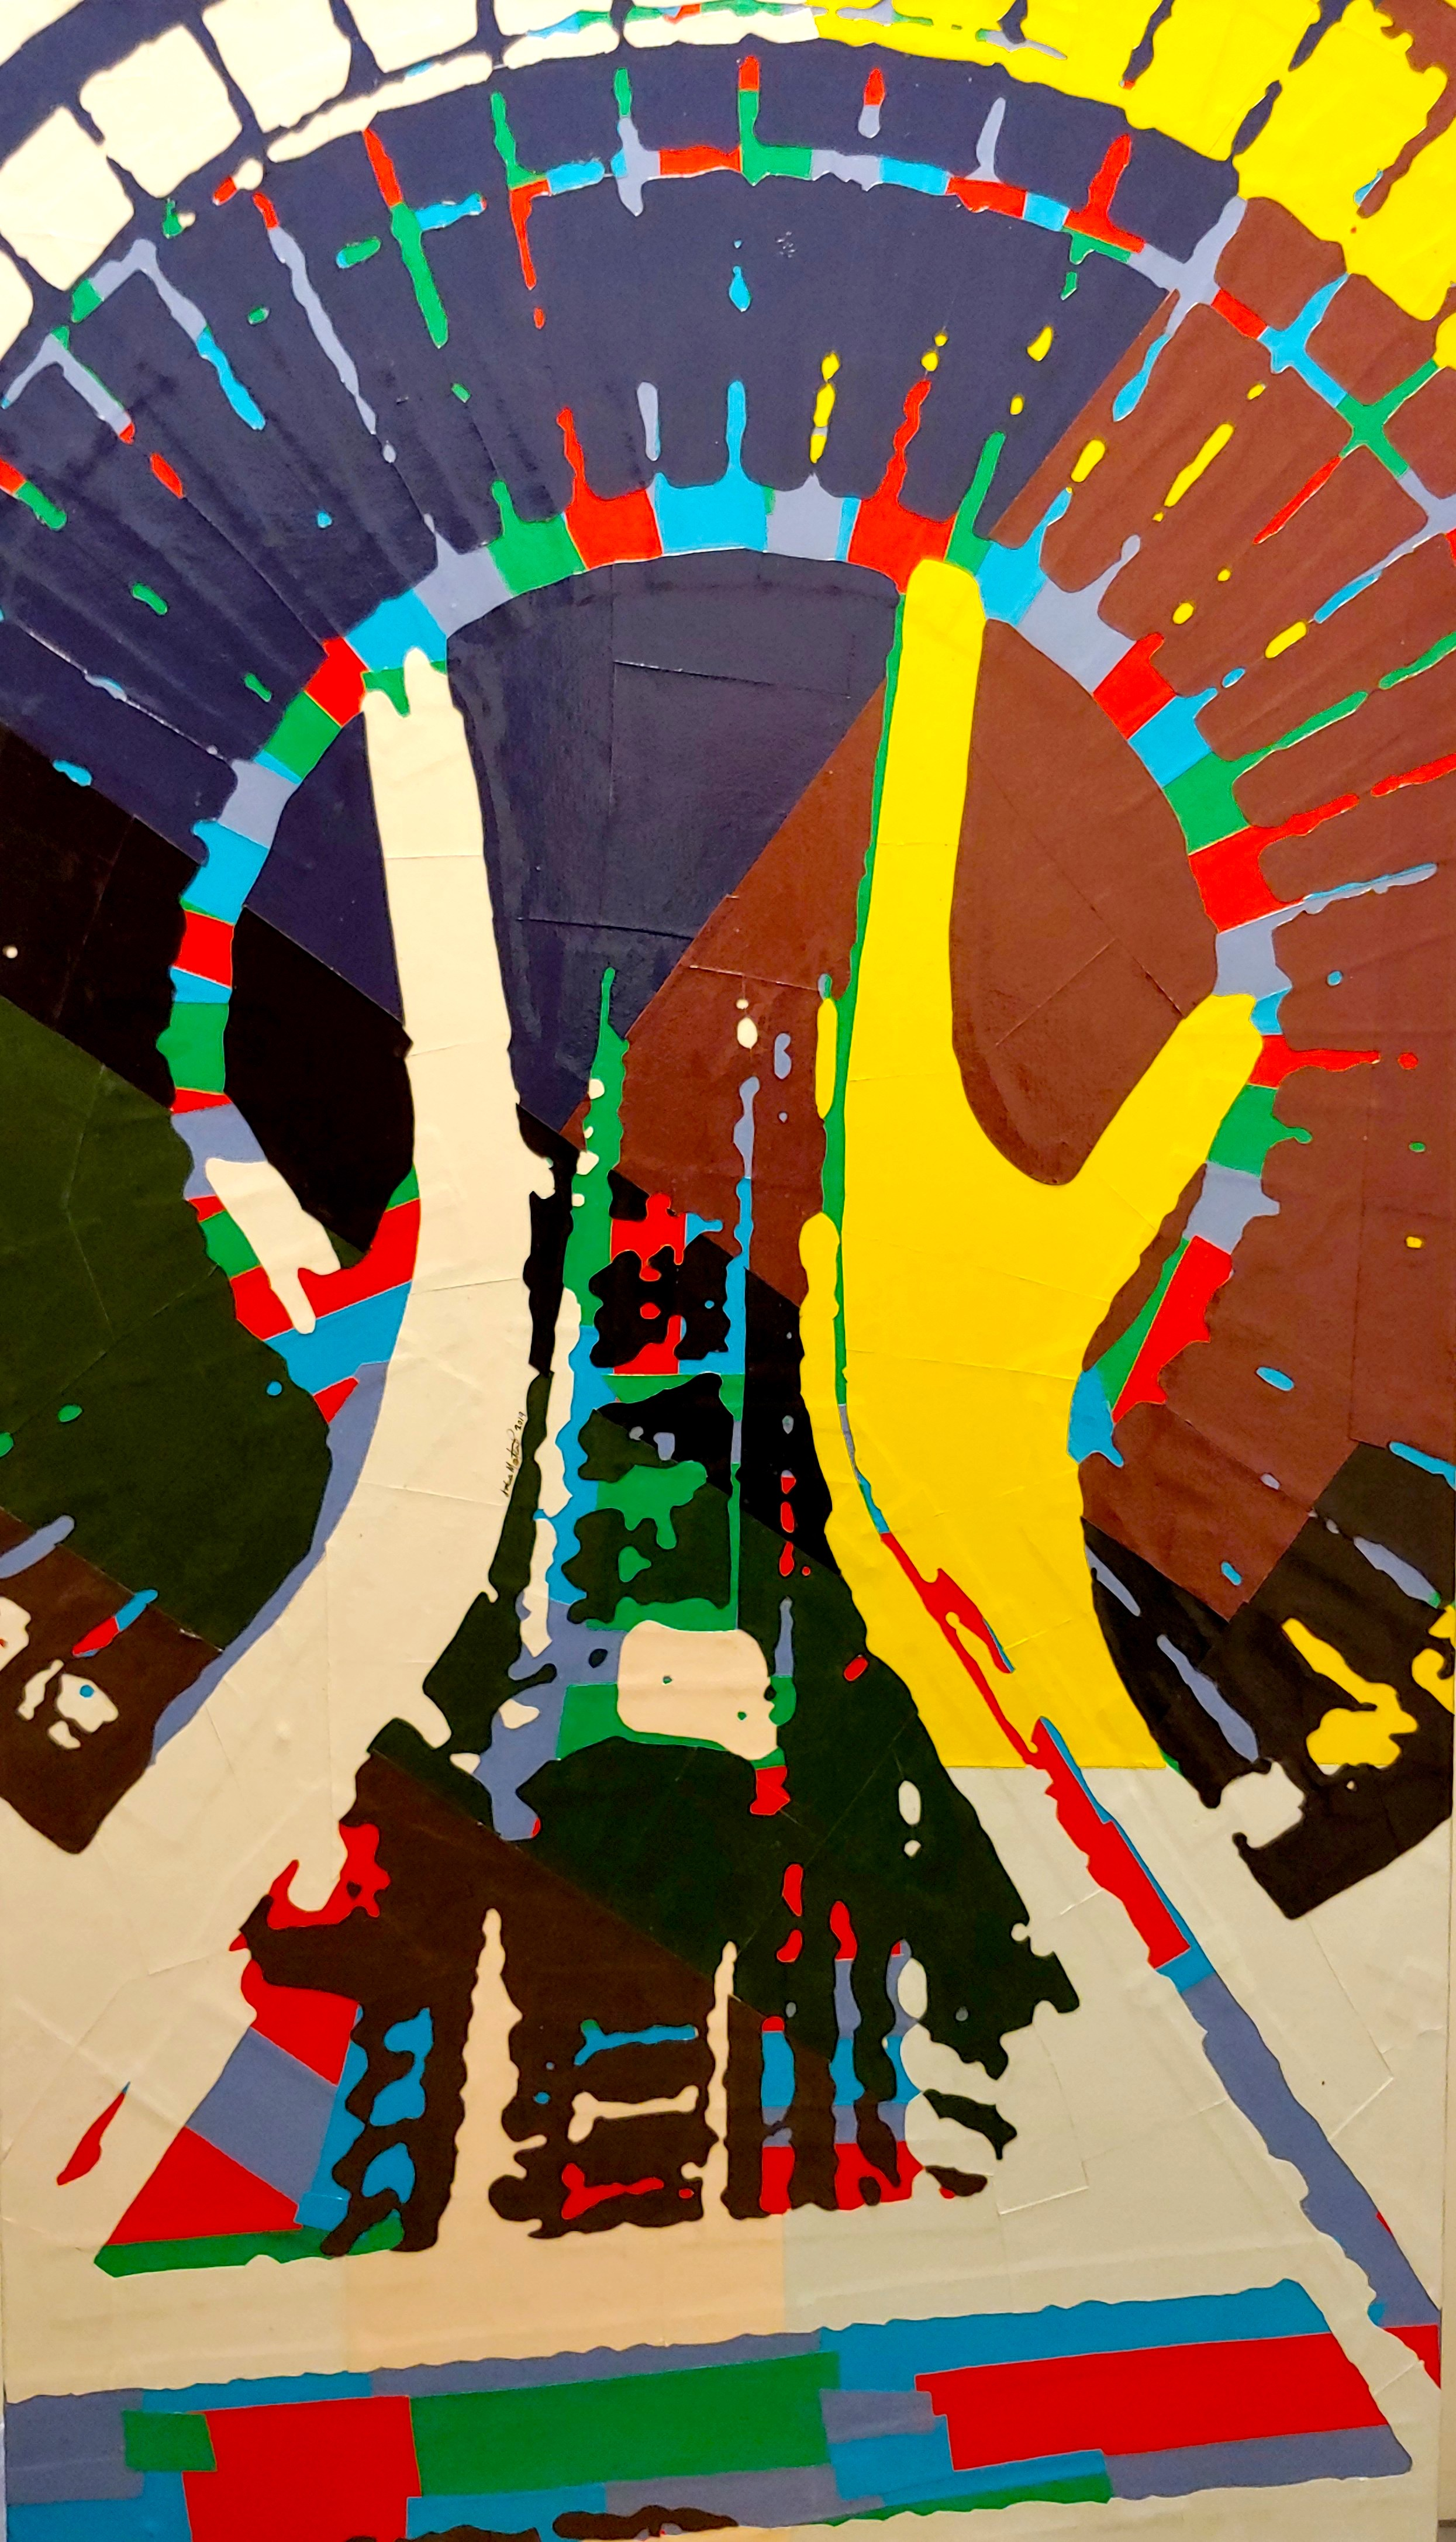 Space Needle No. 12#Paper on panel#42 x 24 inches#SOLD